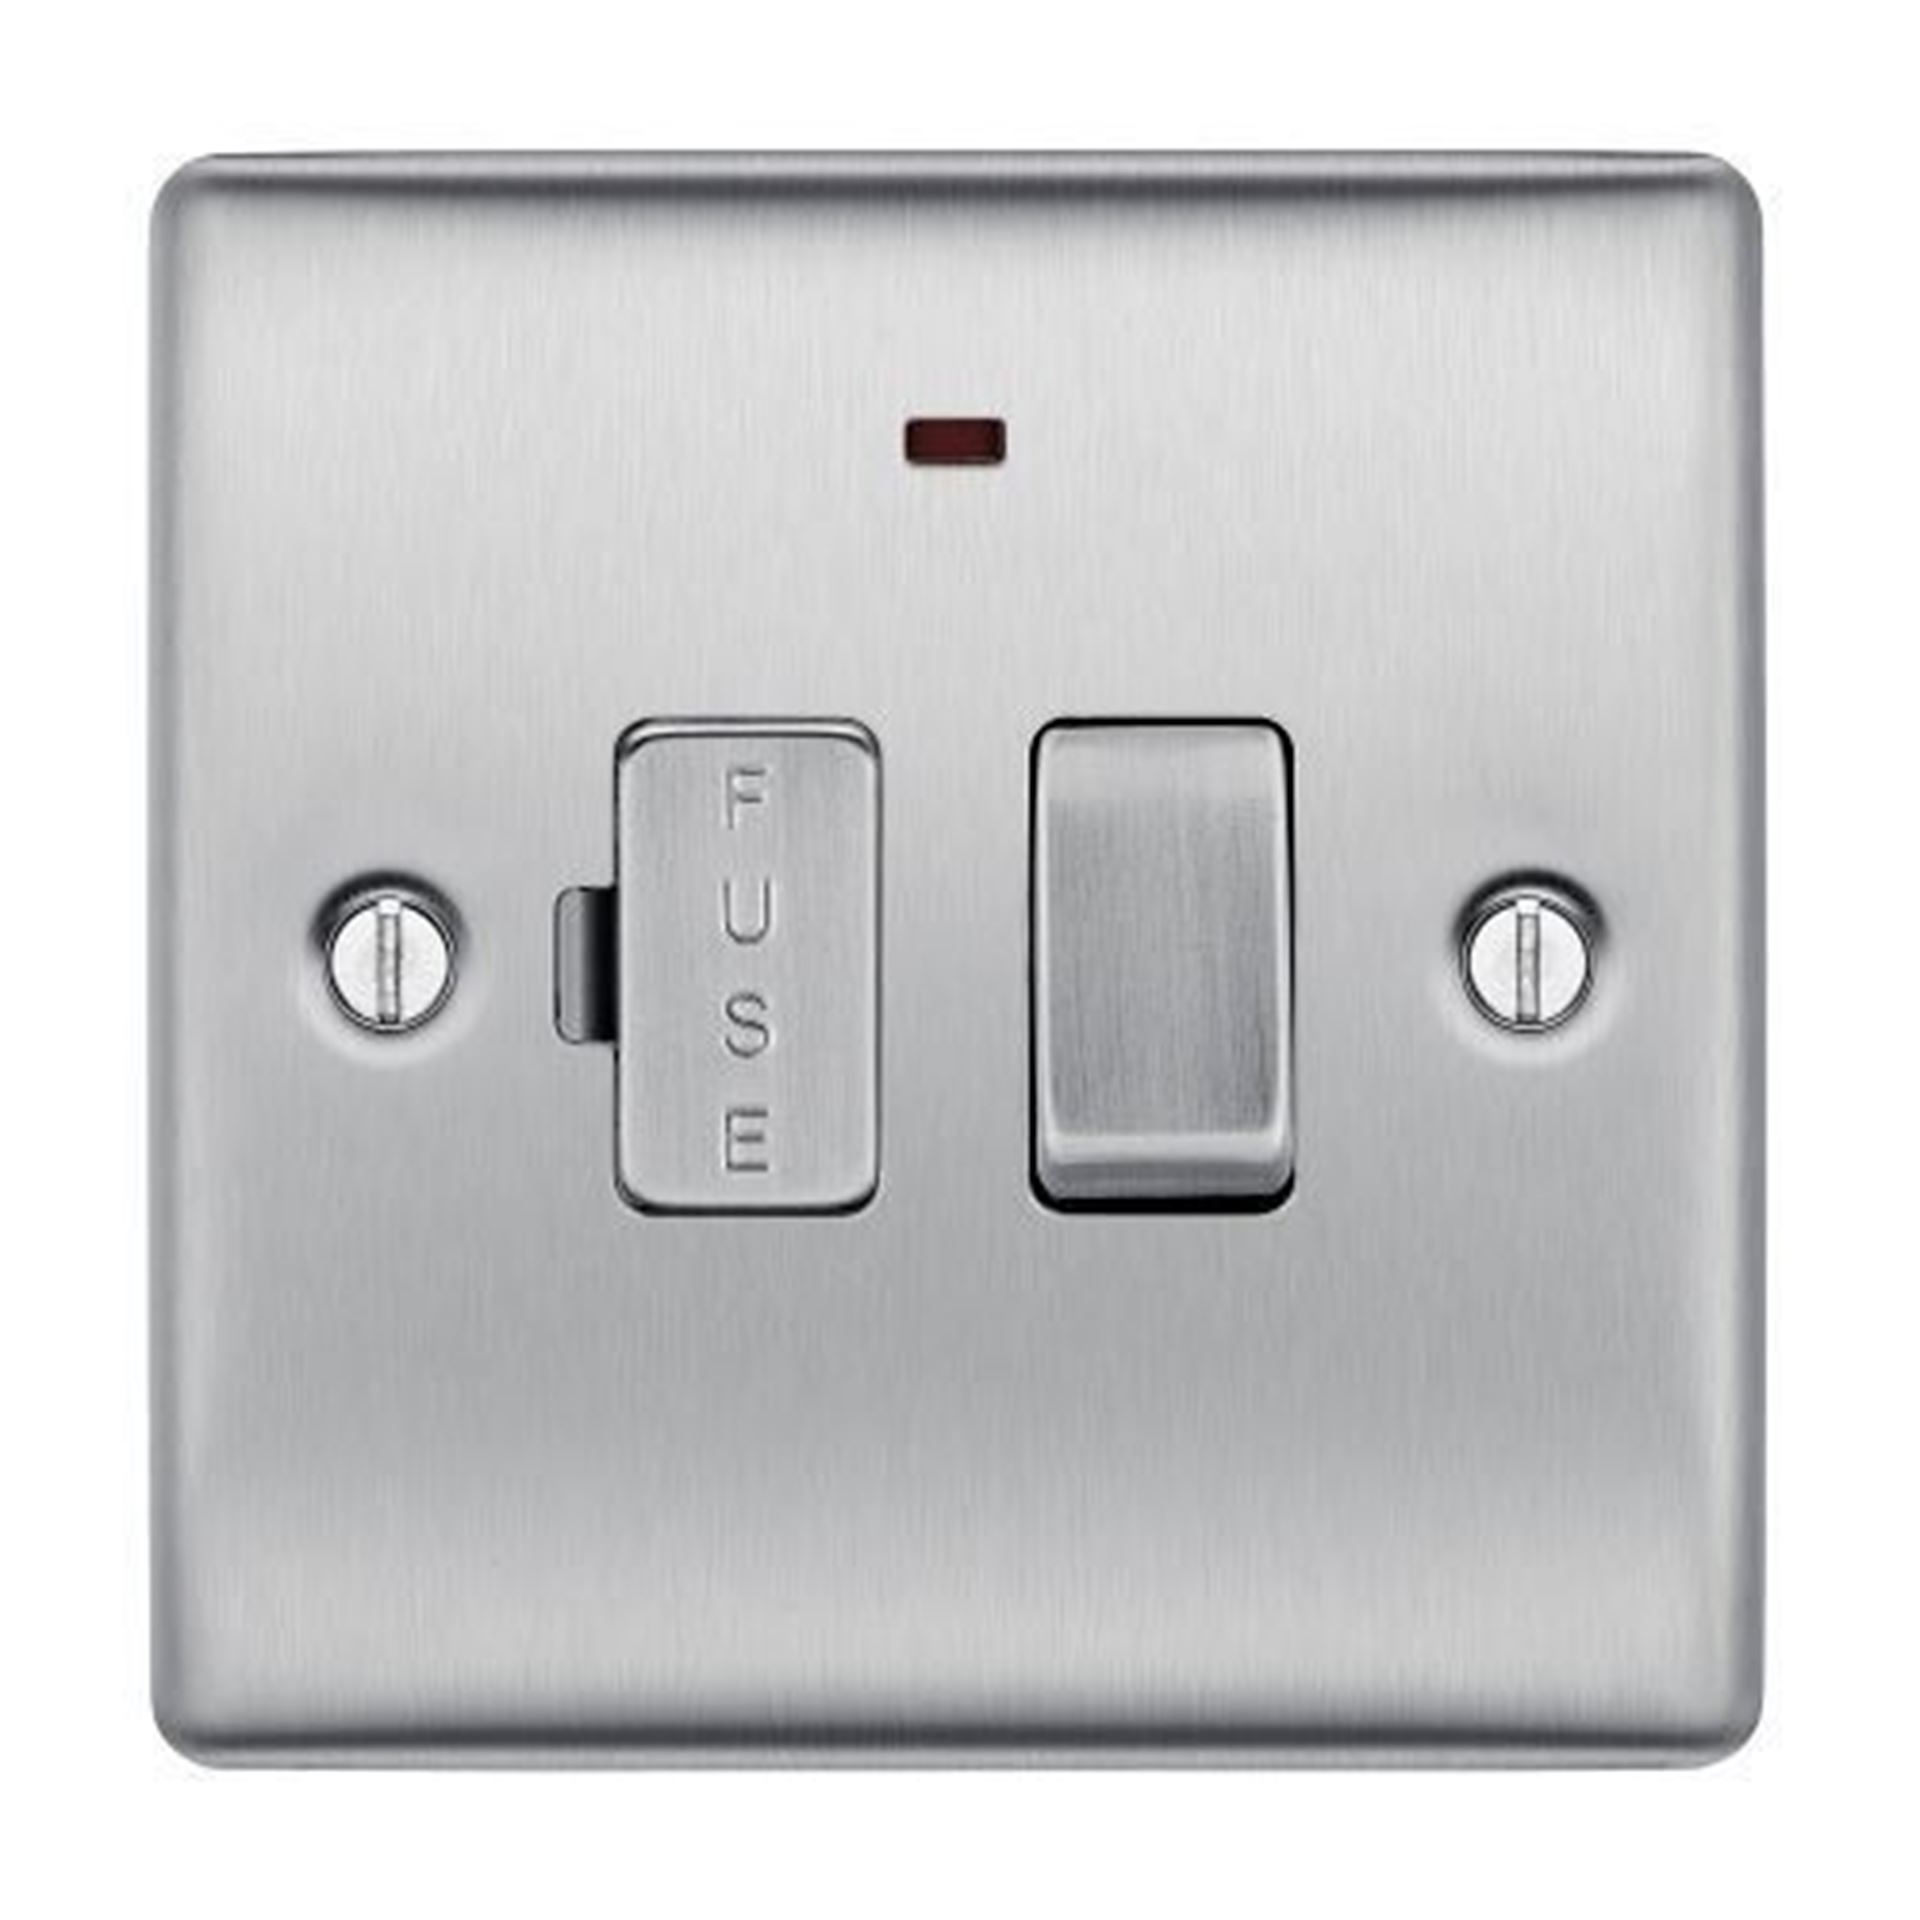 NBS52 BRUSHED CHROME 13A FUSED CONNECTION UNIT SWITCHED WITH POWER INDICATOR